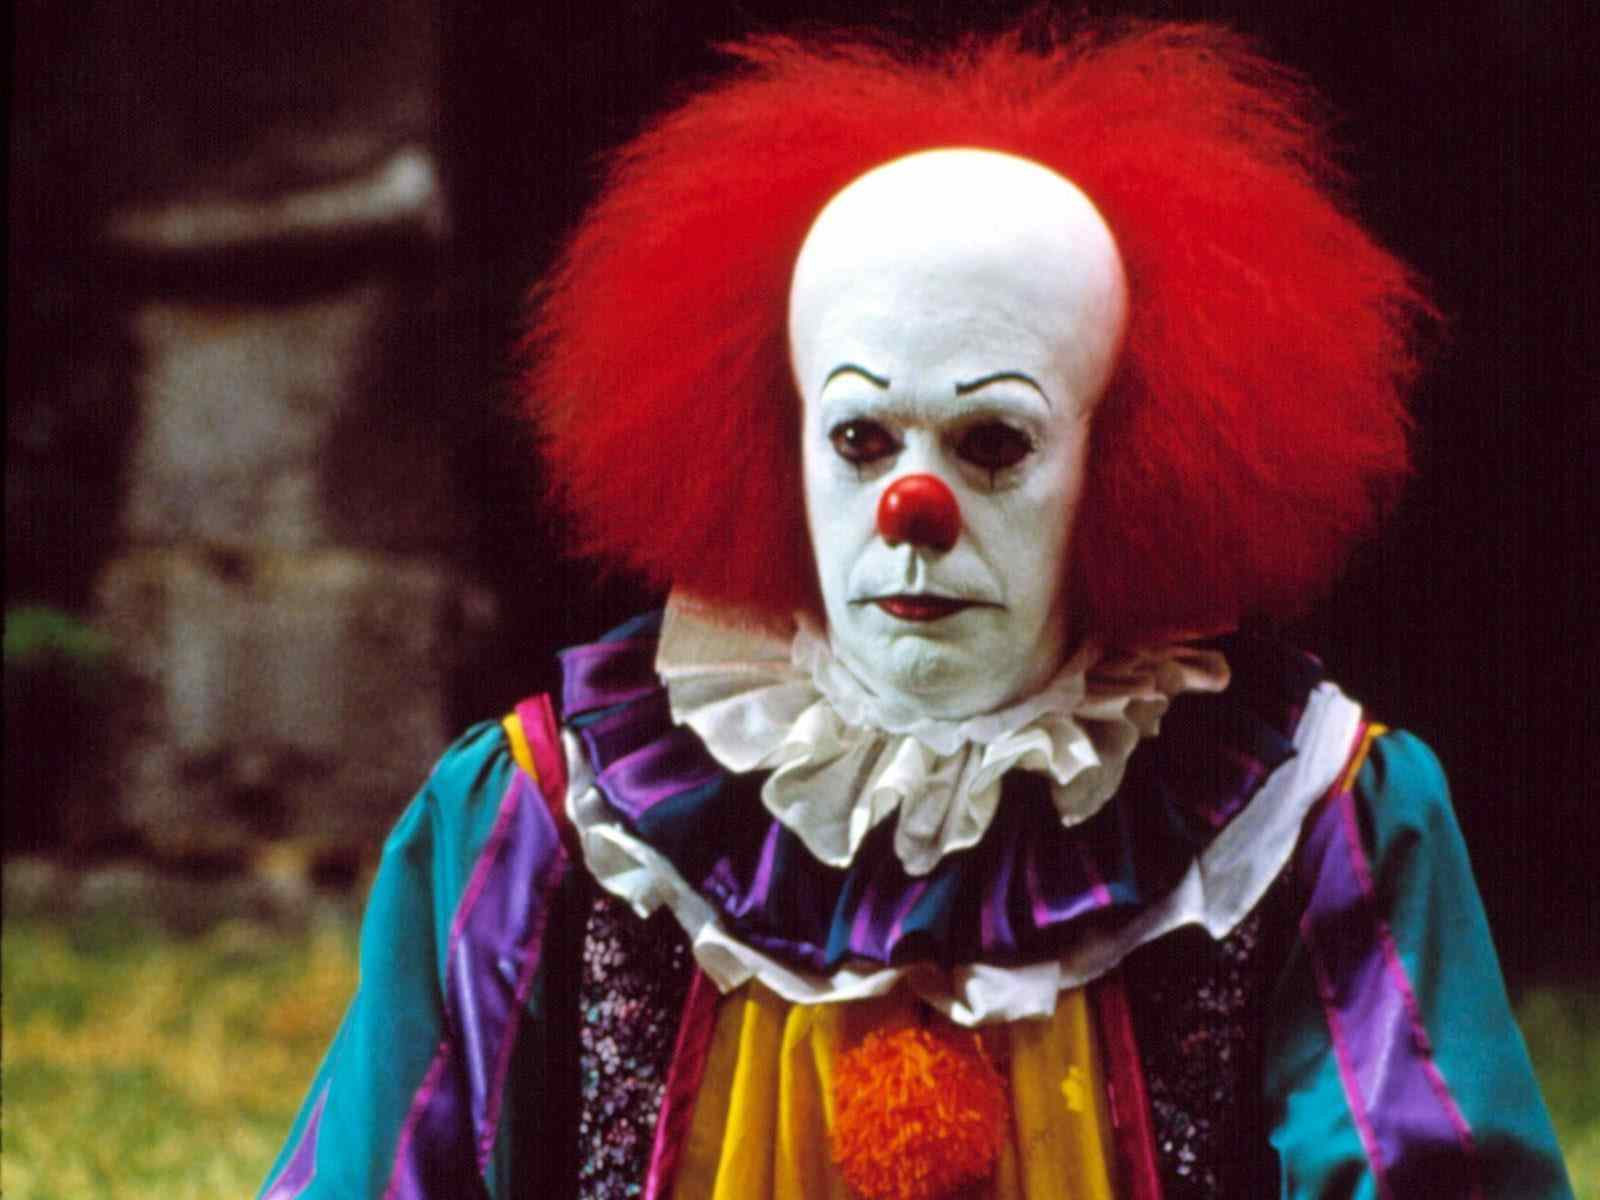 Pennywise the clown from IT.